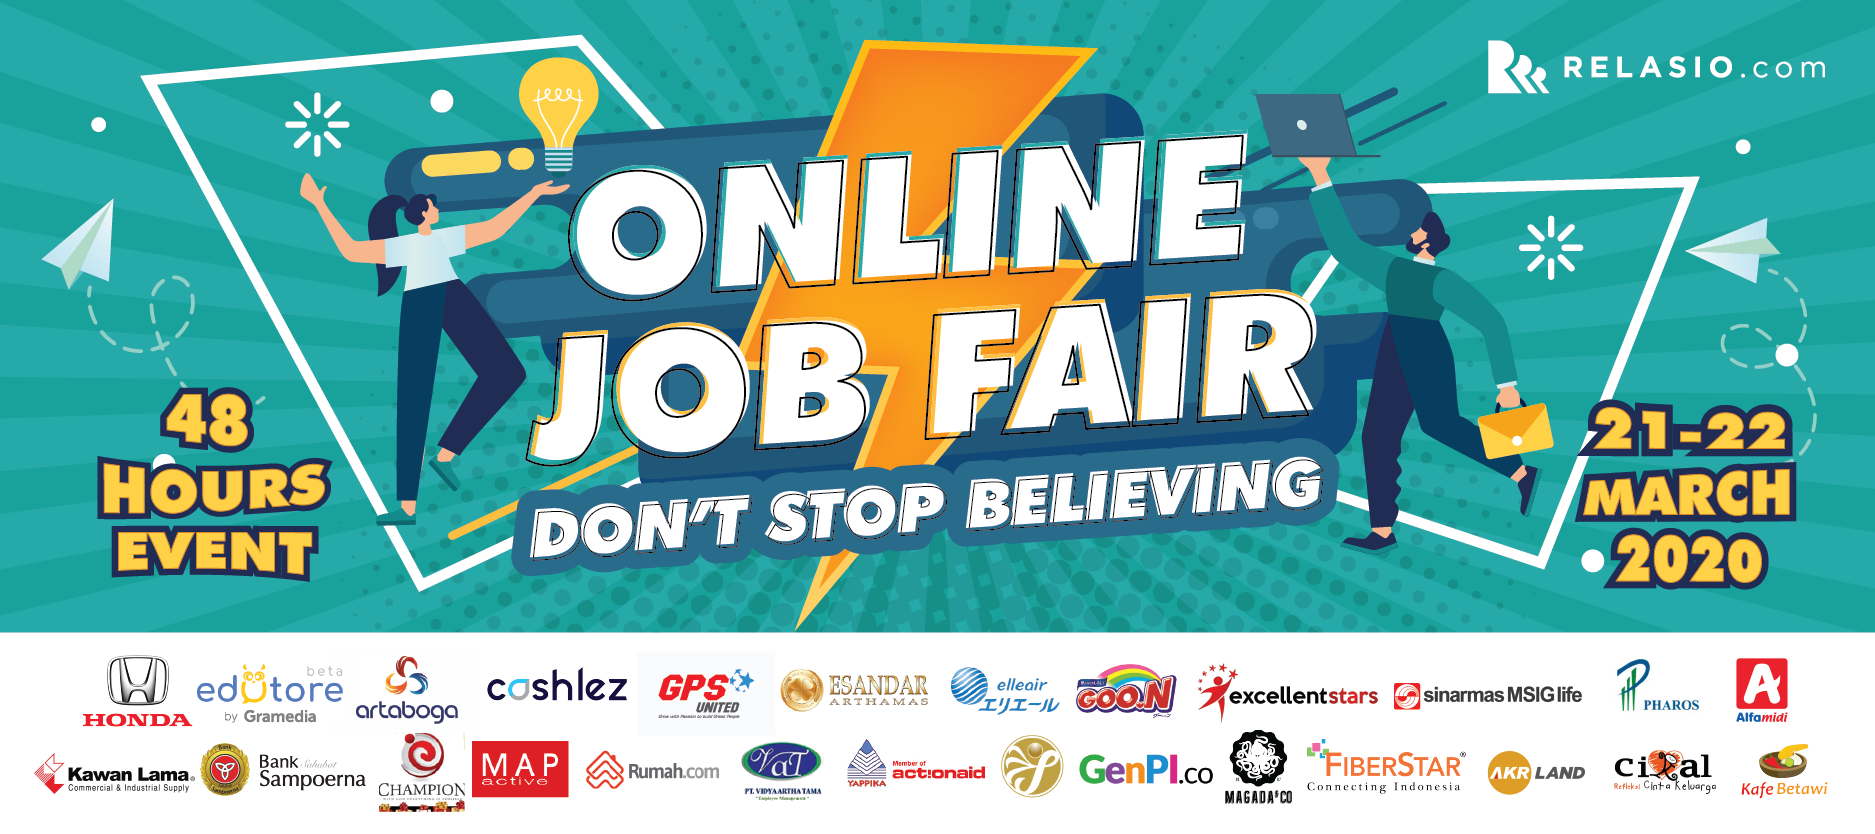 Online Job Fair Relasio.com March 2020 Session 1